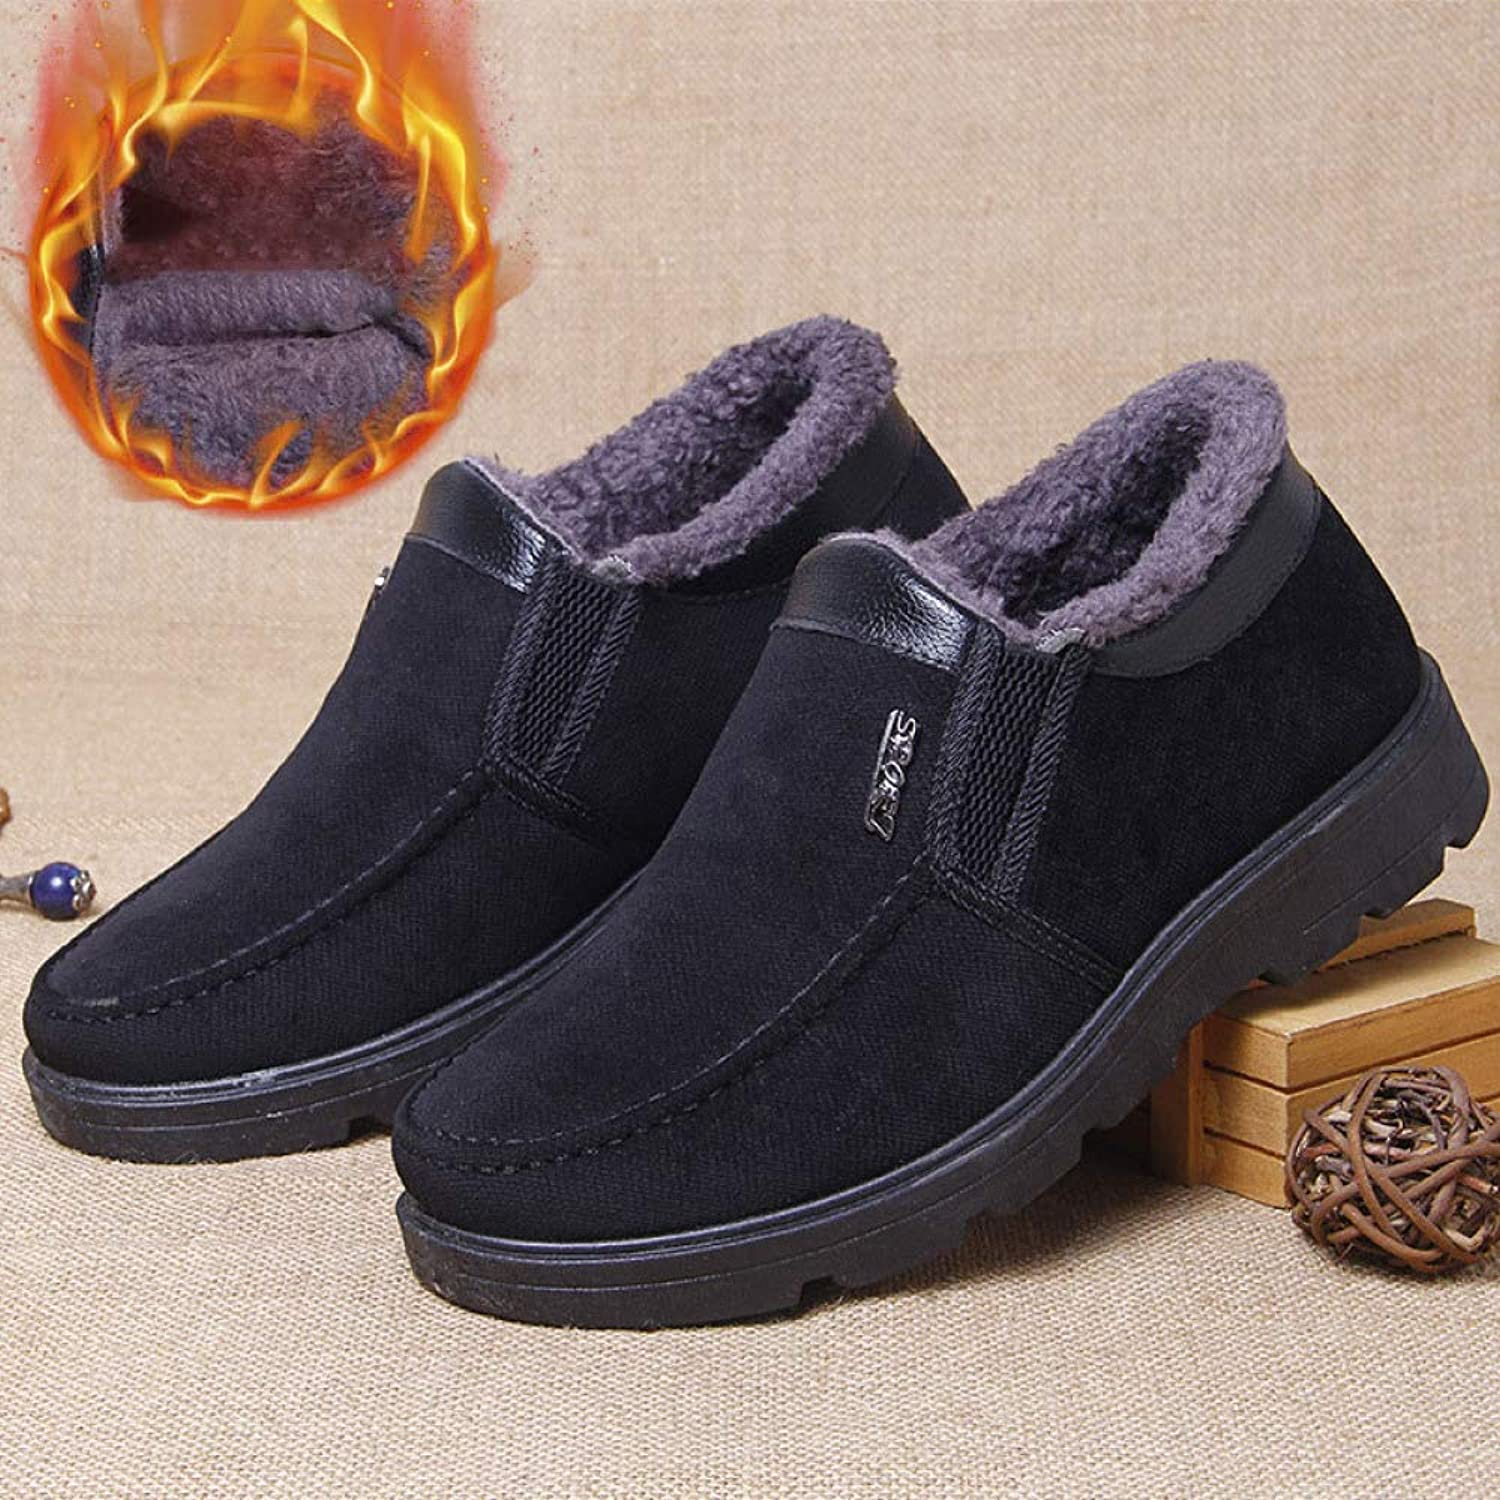 shoes 2018 Winter Old Beijing Non-Slip Wear-Resistant Men's Cotton, Plus Velvet Thick Warm Middle-Aged Father, Warm Winter and Velvet to Increase Cotton